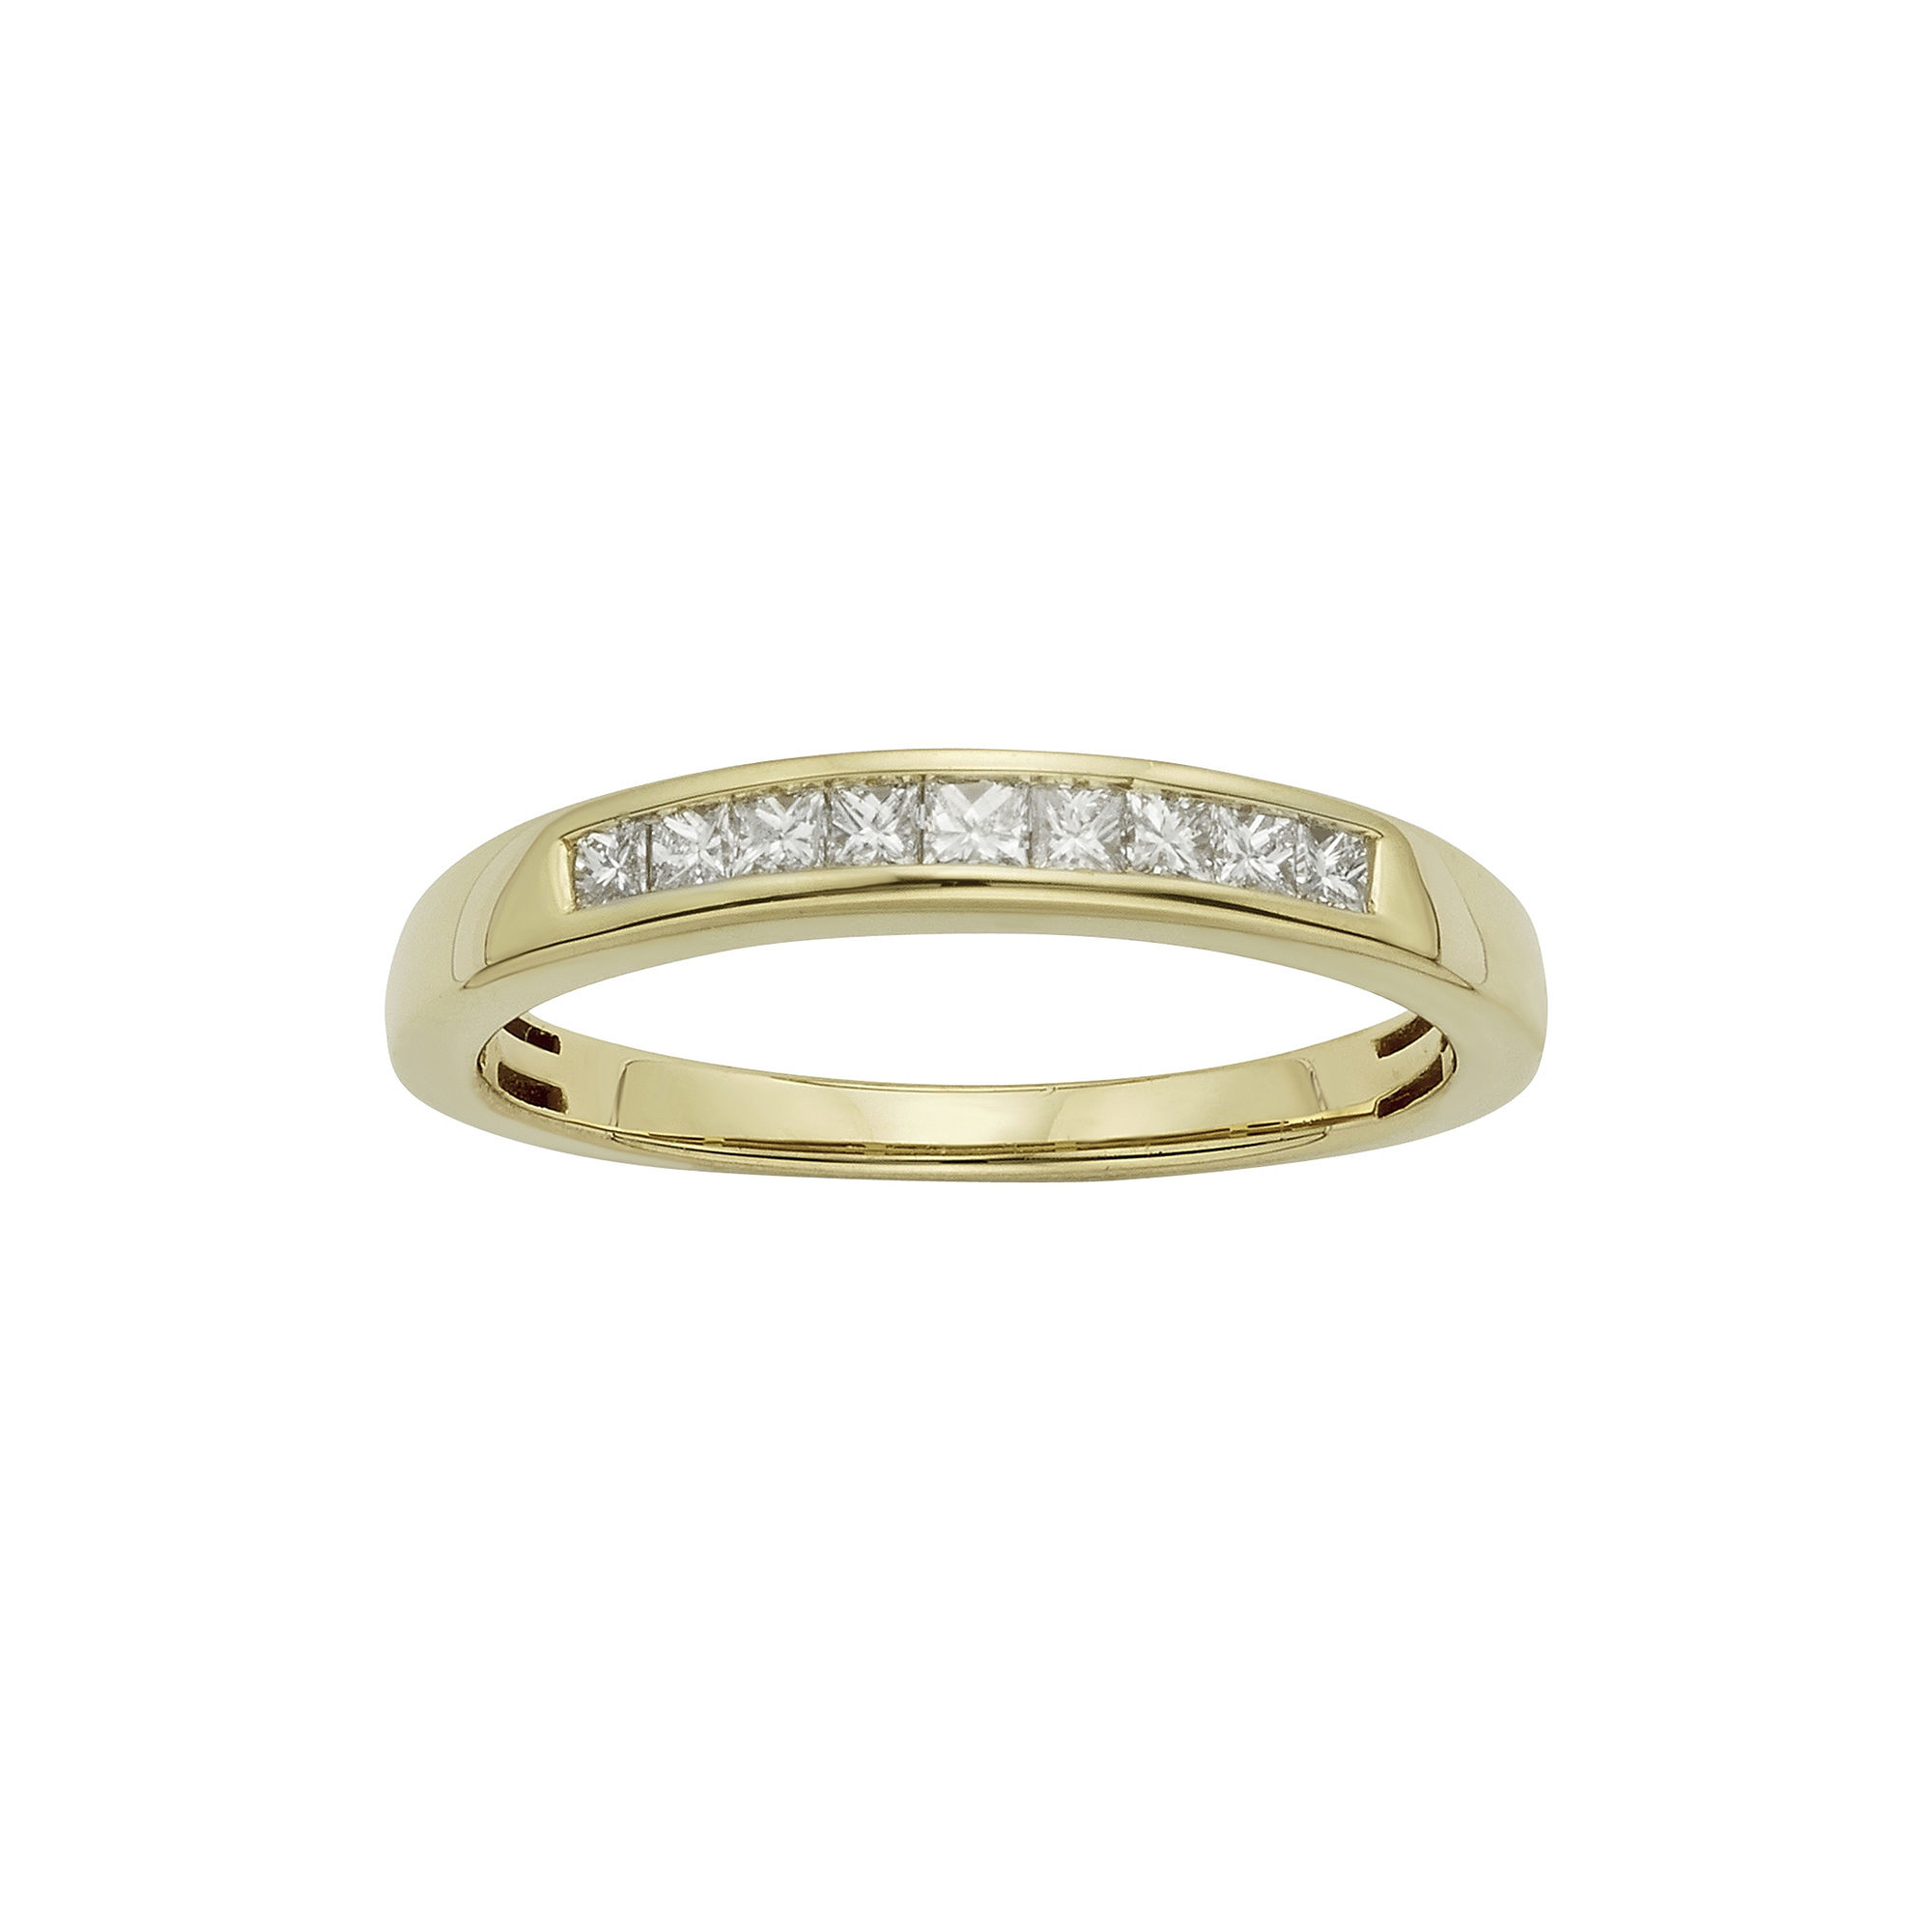 Wedding 20Bands jcpenny wedding rings T W Certified Diamonds 14K Yellow Gold Wedding Band Ring JCPenney